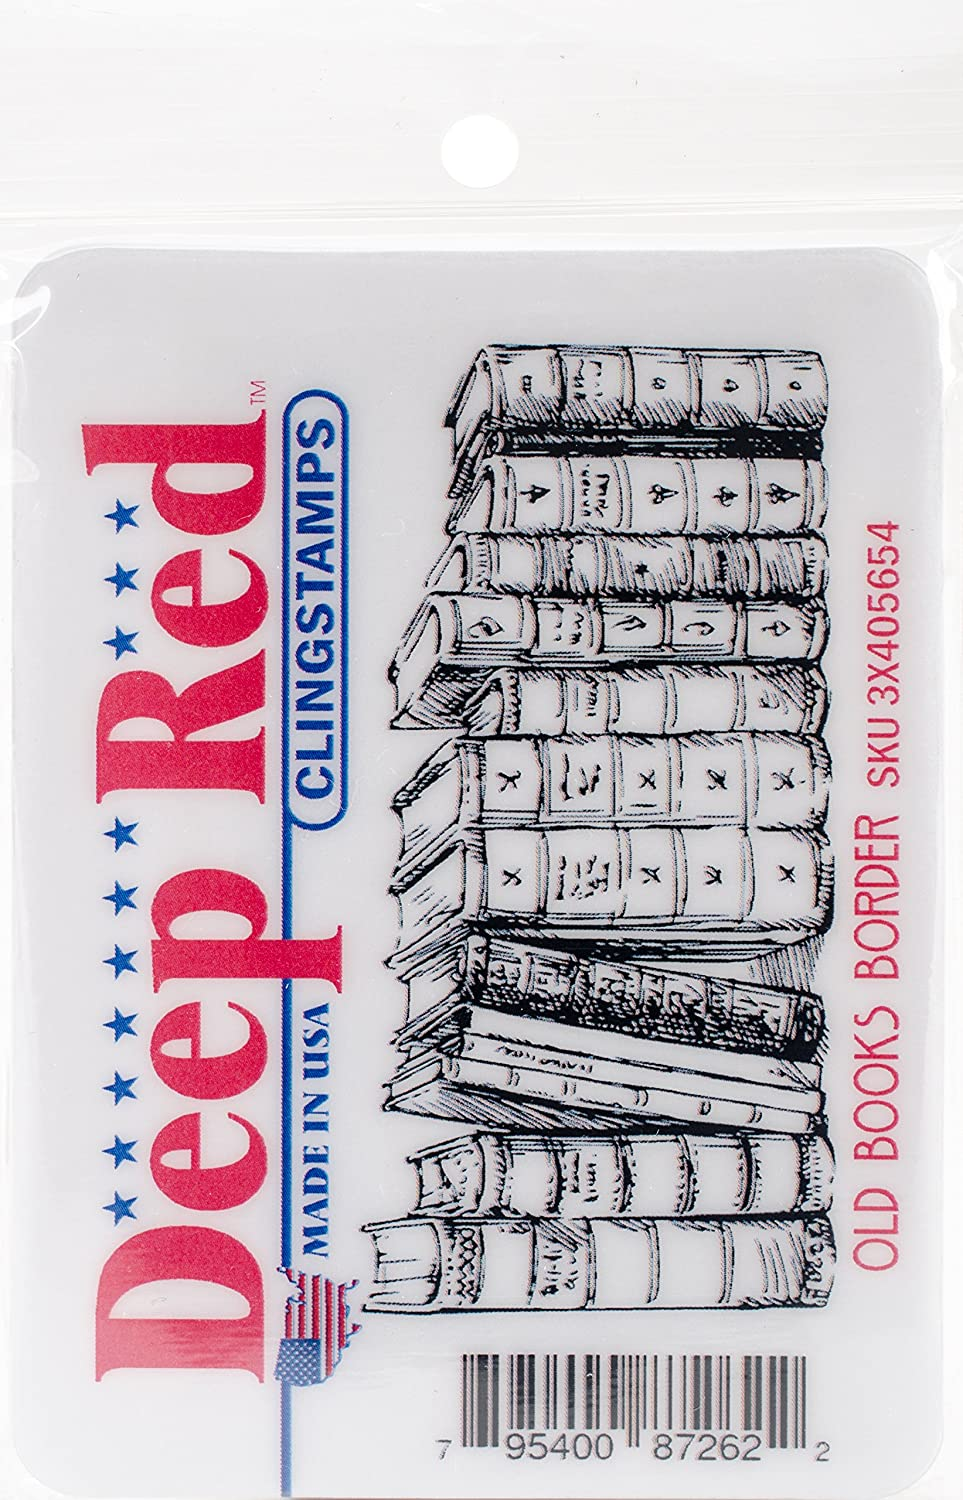 Deep Red Stamps Old Books Border Deep Red Cling Stamp, 3.2X1.5 3.2X1.5 3X405654